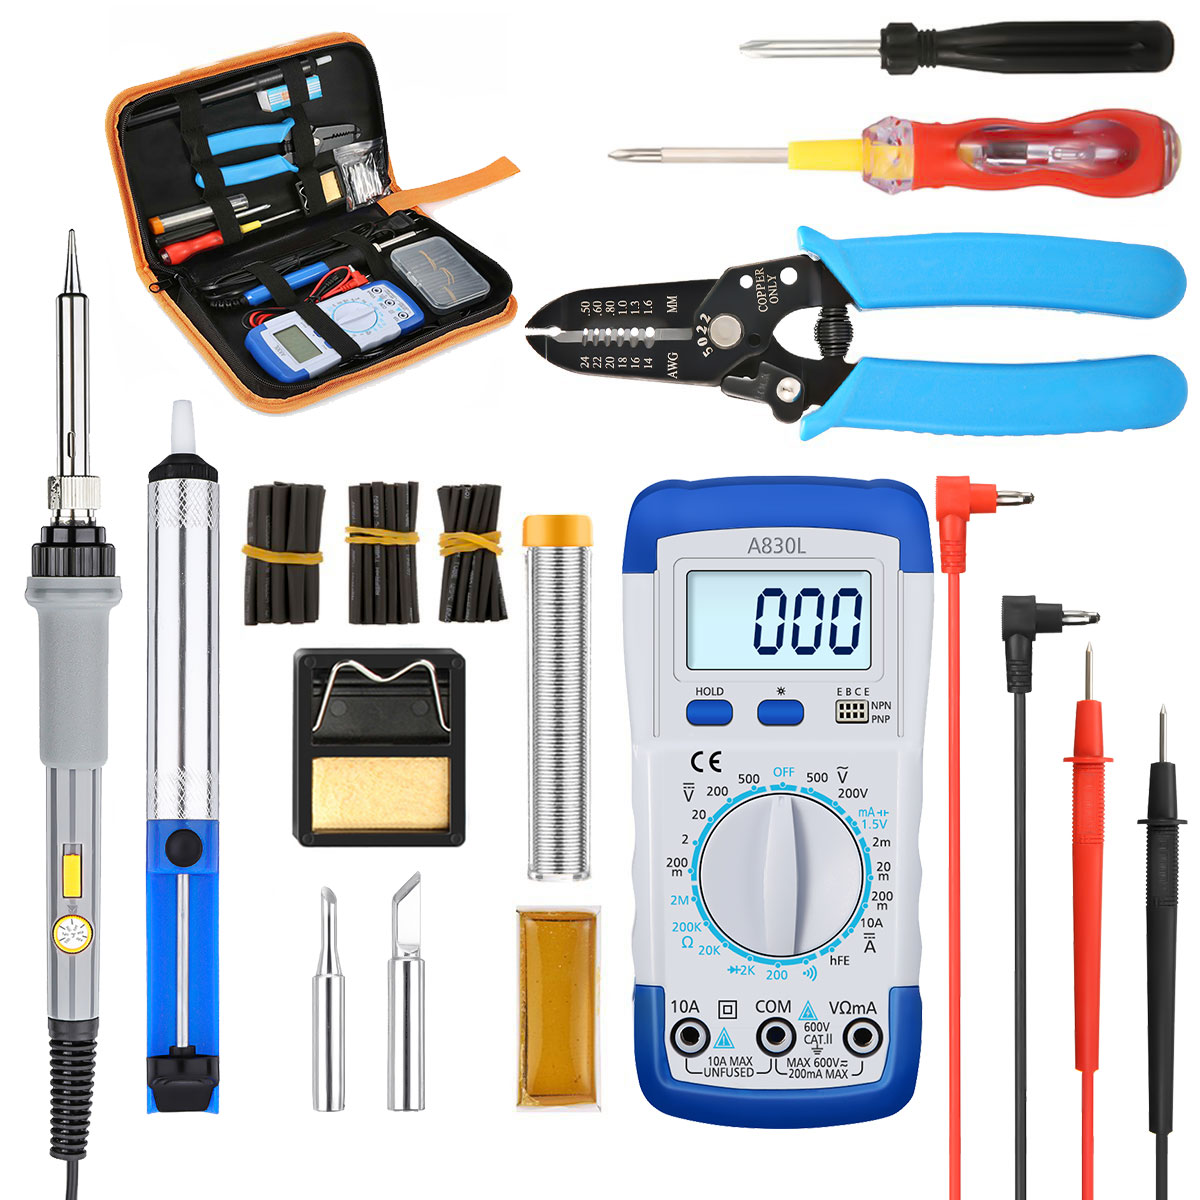 10Pcs/Set Adjustable Temperature Electric Soldering Iron Kit 110V 220V 60W Tips Heating Welding Tools With Multimeter EU/US Plug